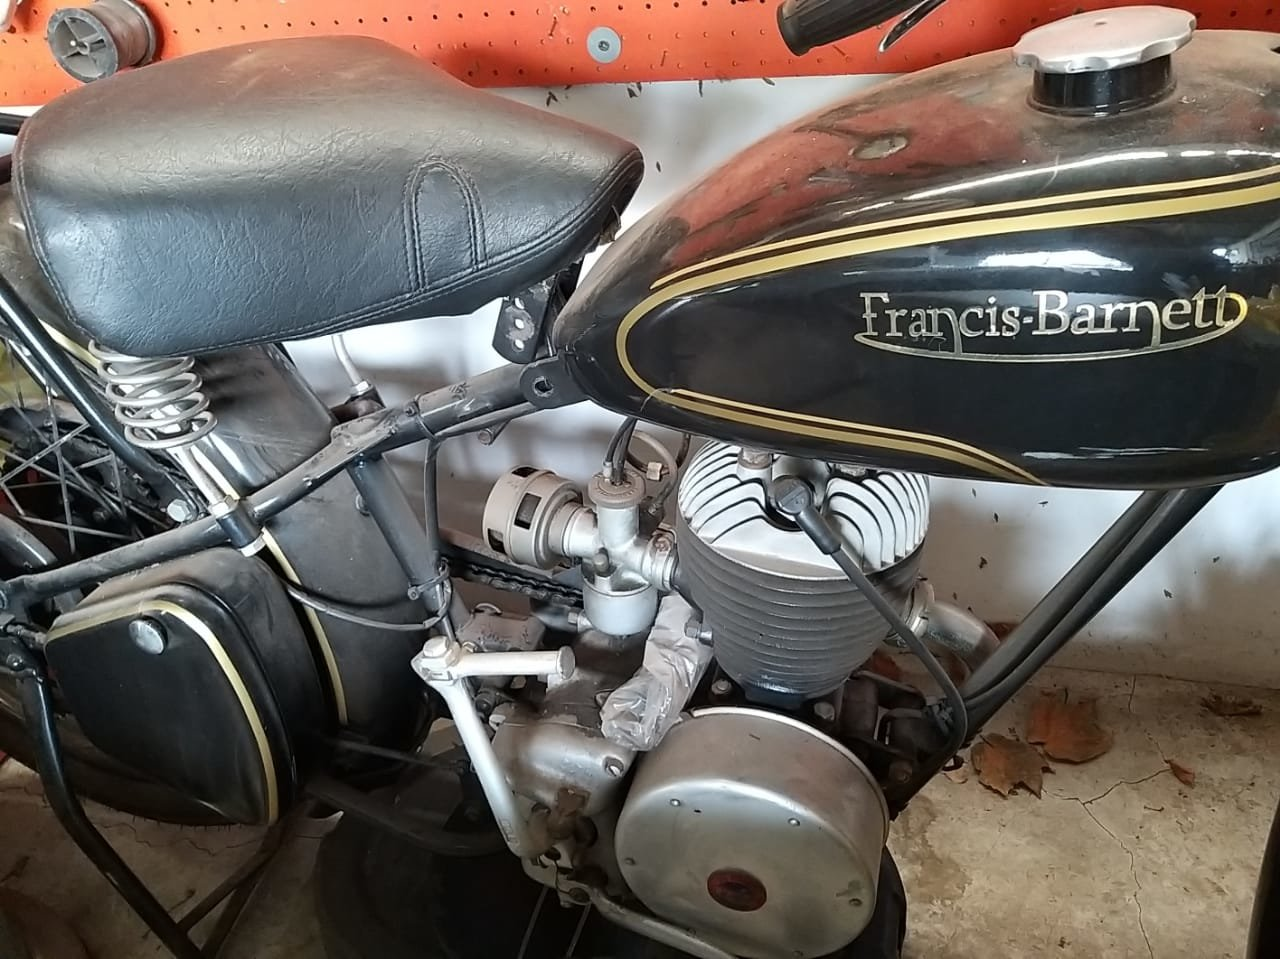 1952 Francis Barnett Motorcycle For Sale (picture 2 of 6)